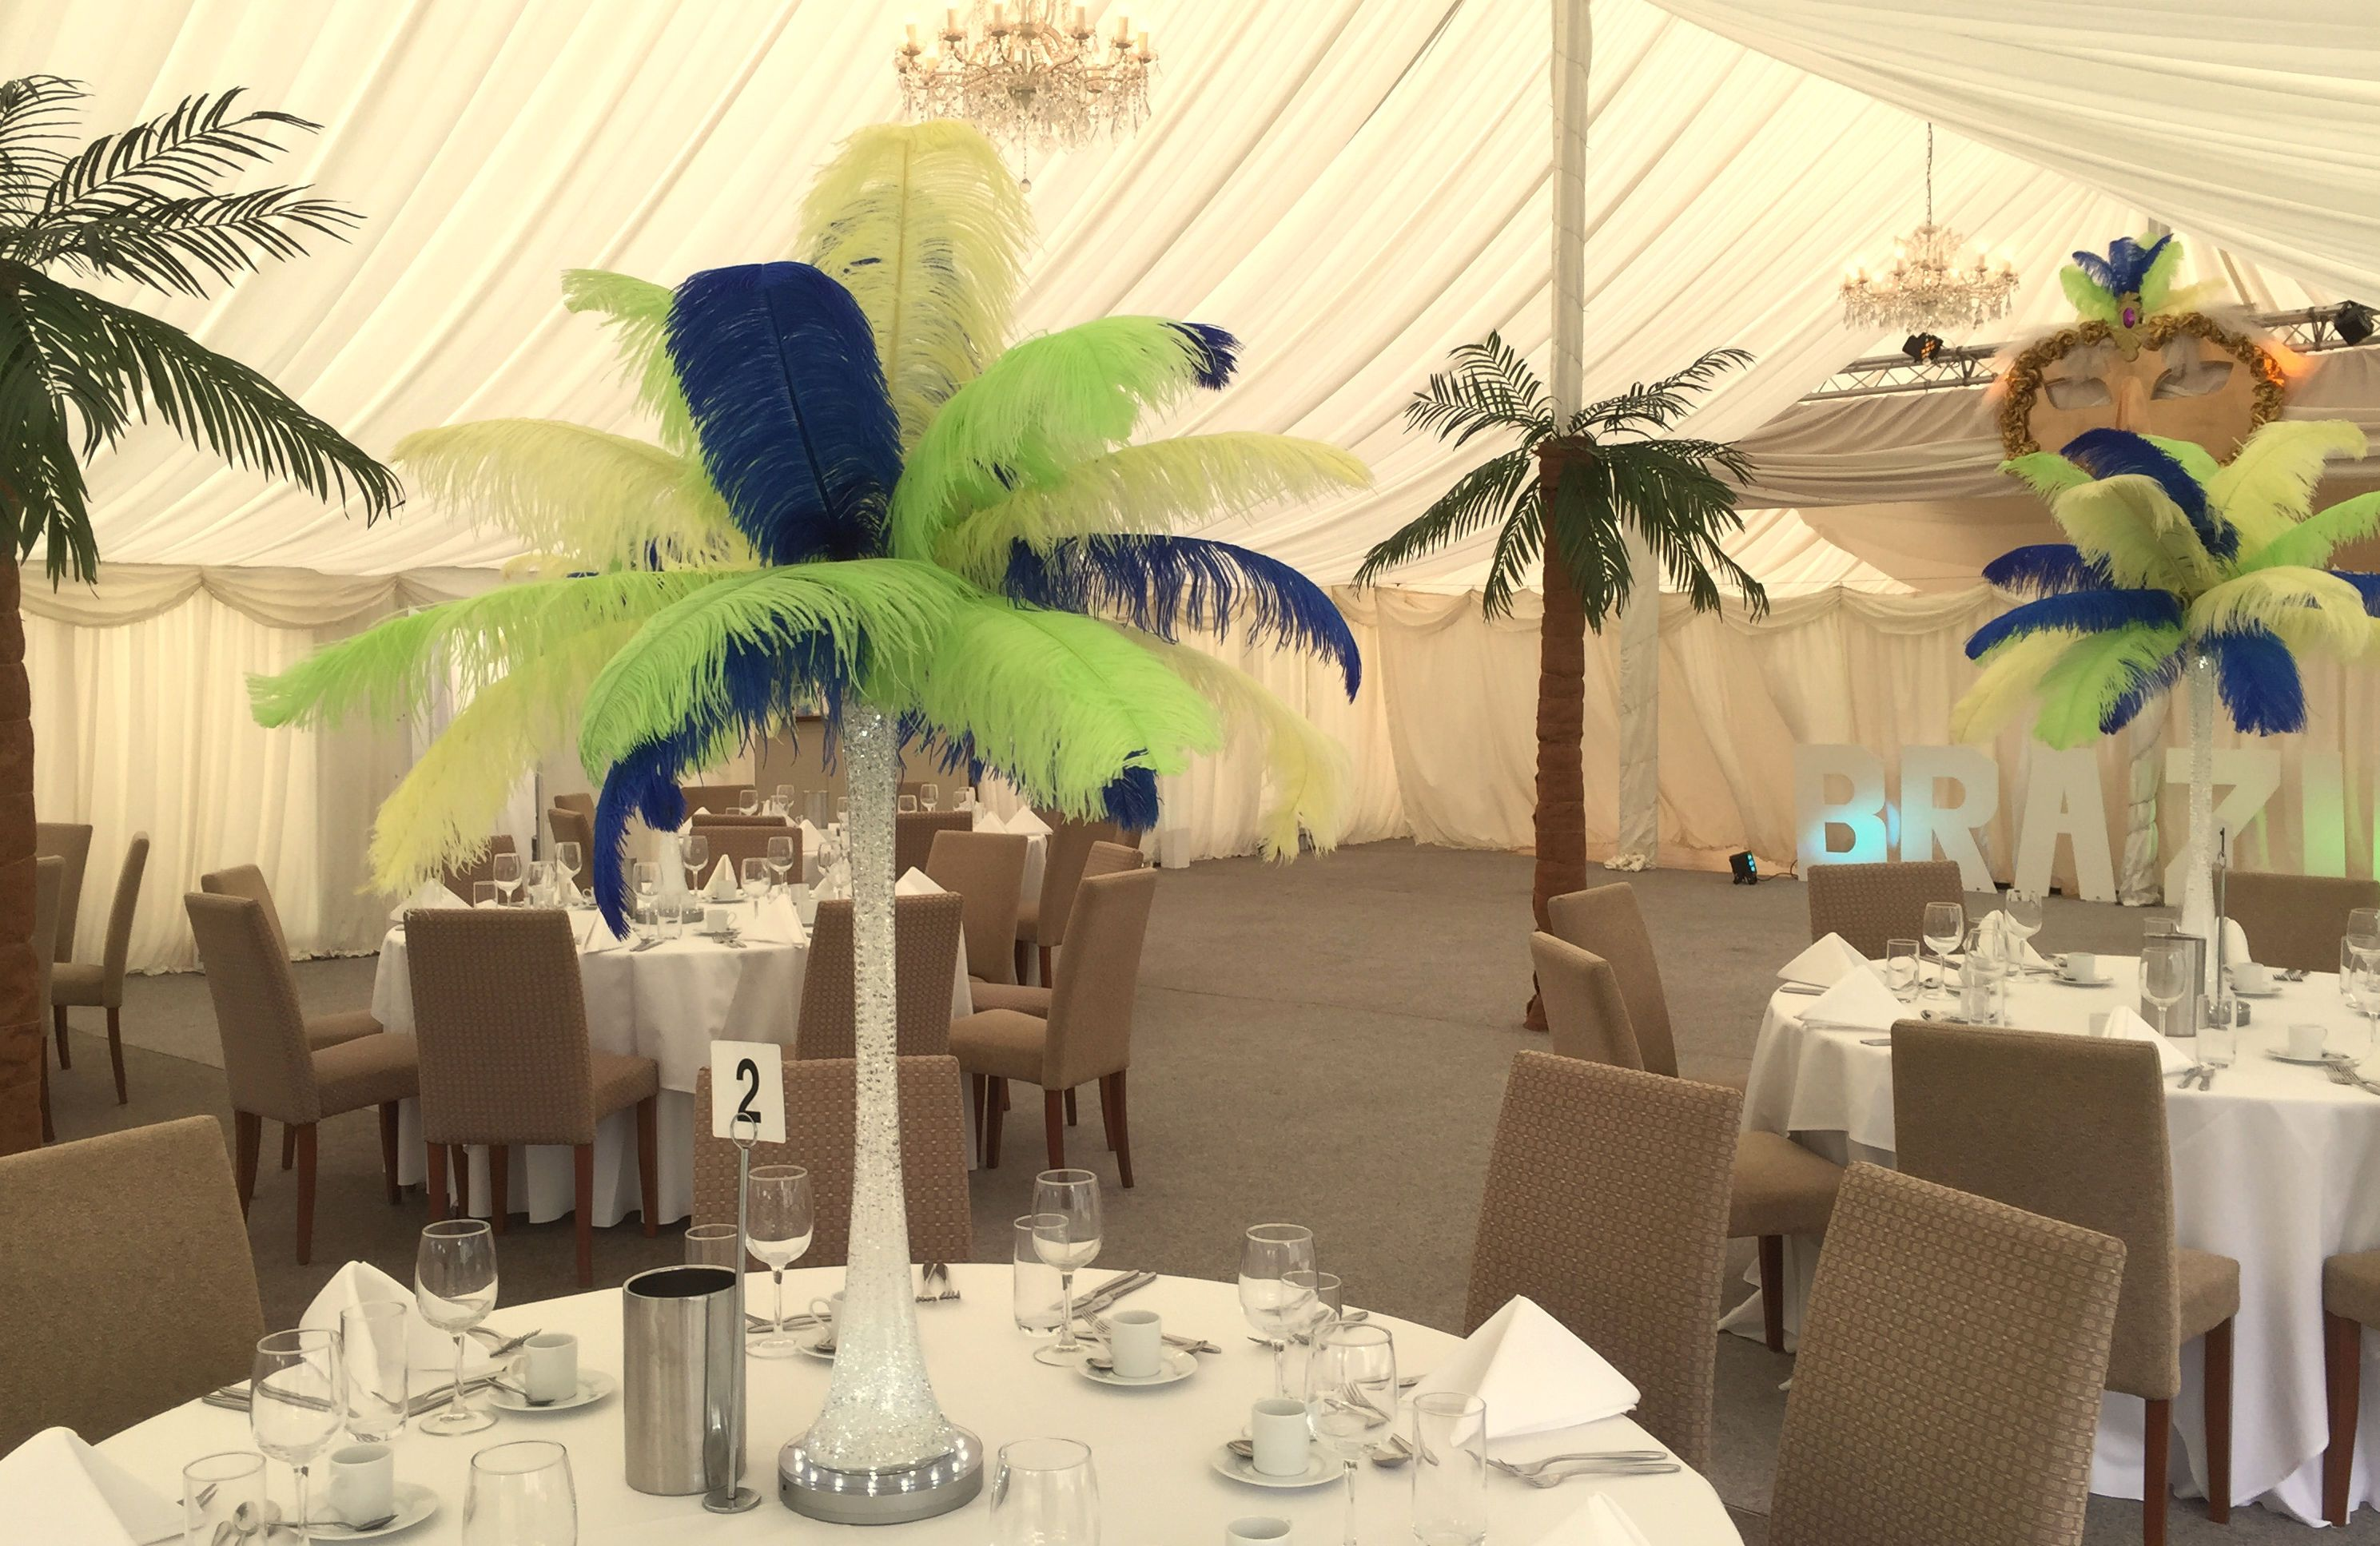 Glass Vase And Feather Table Centre, Tree Decoration For Marquee